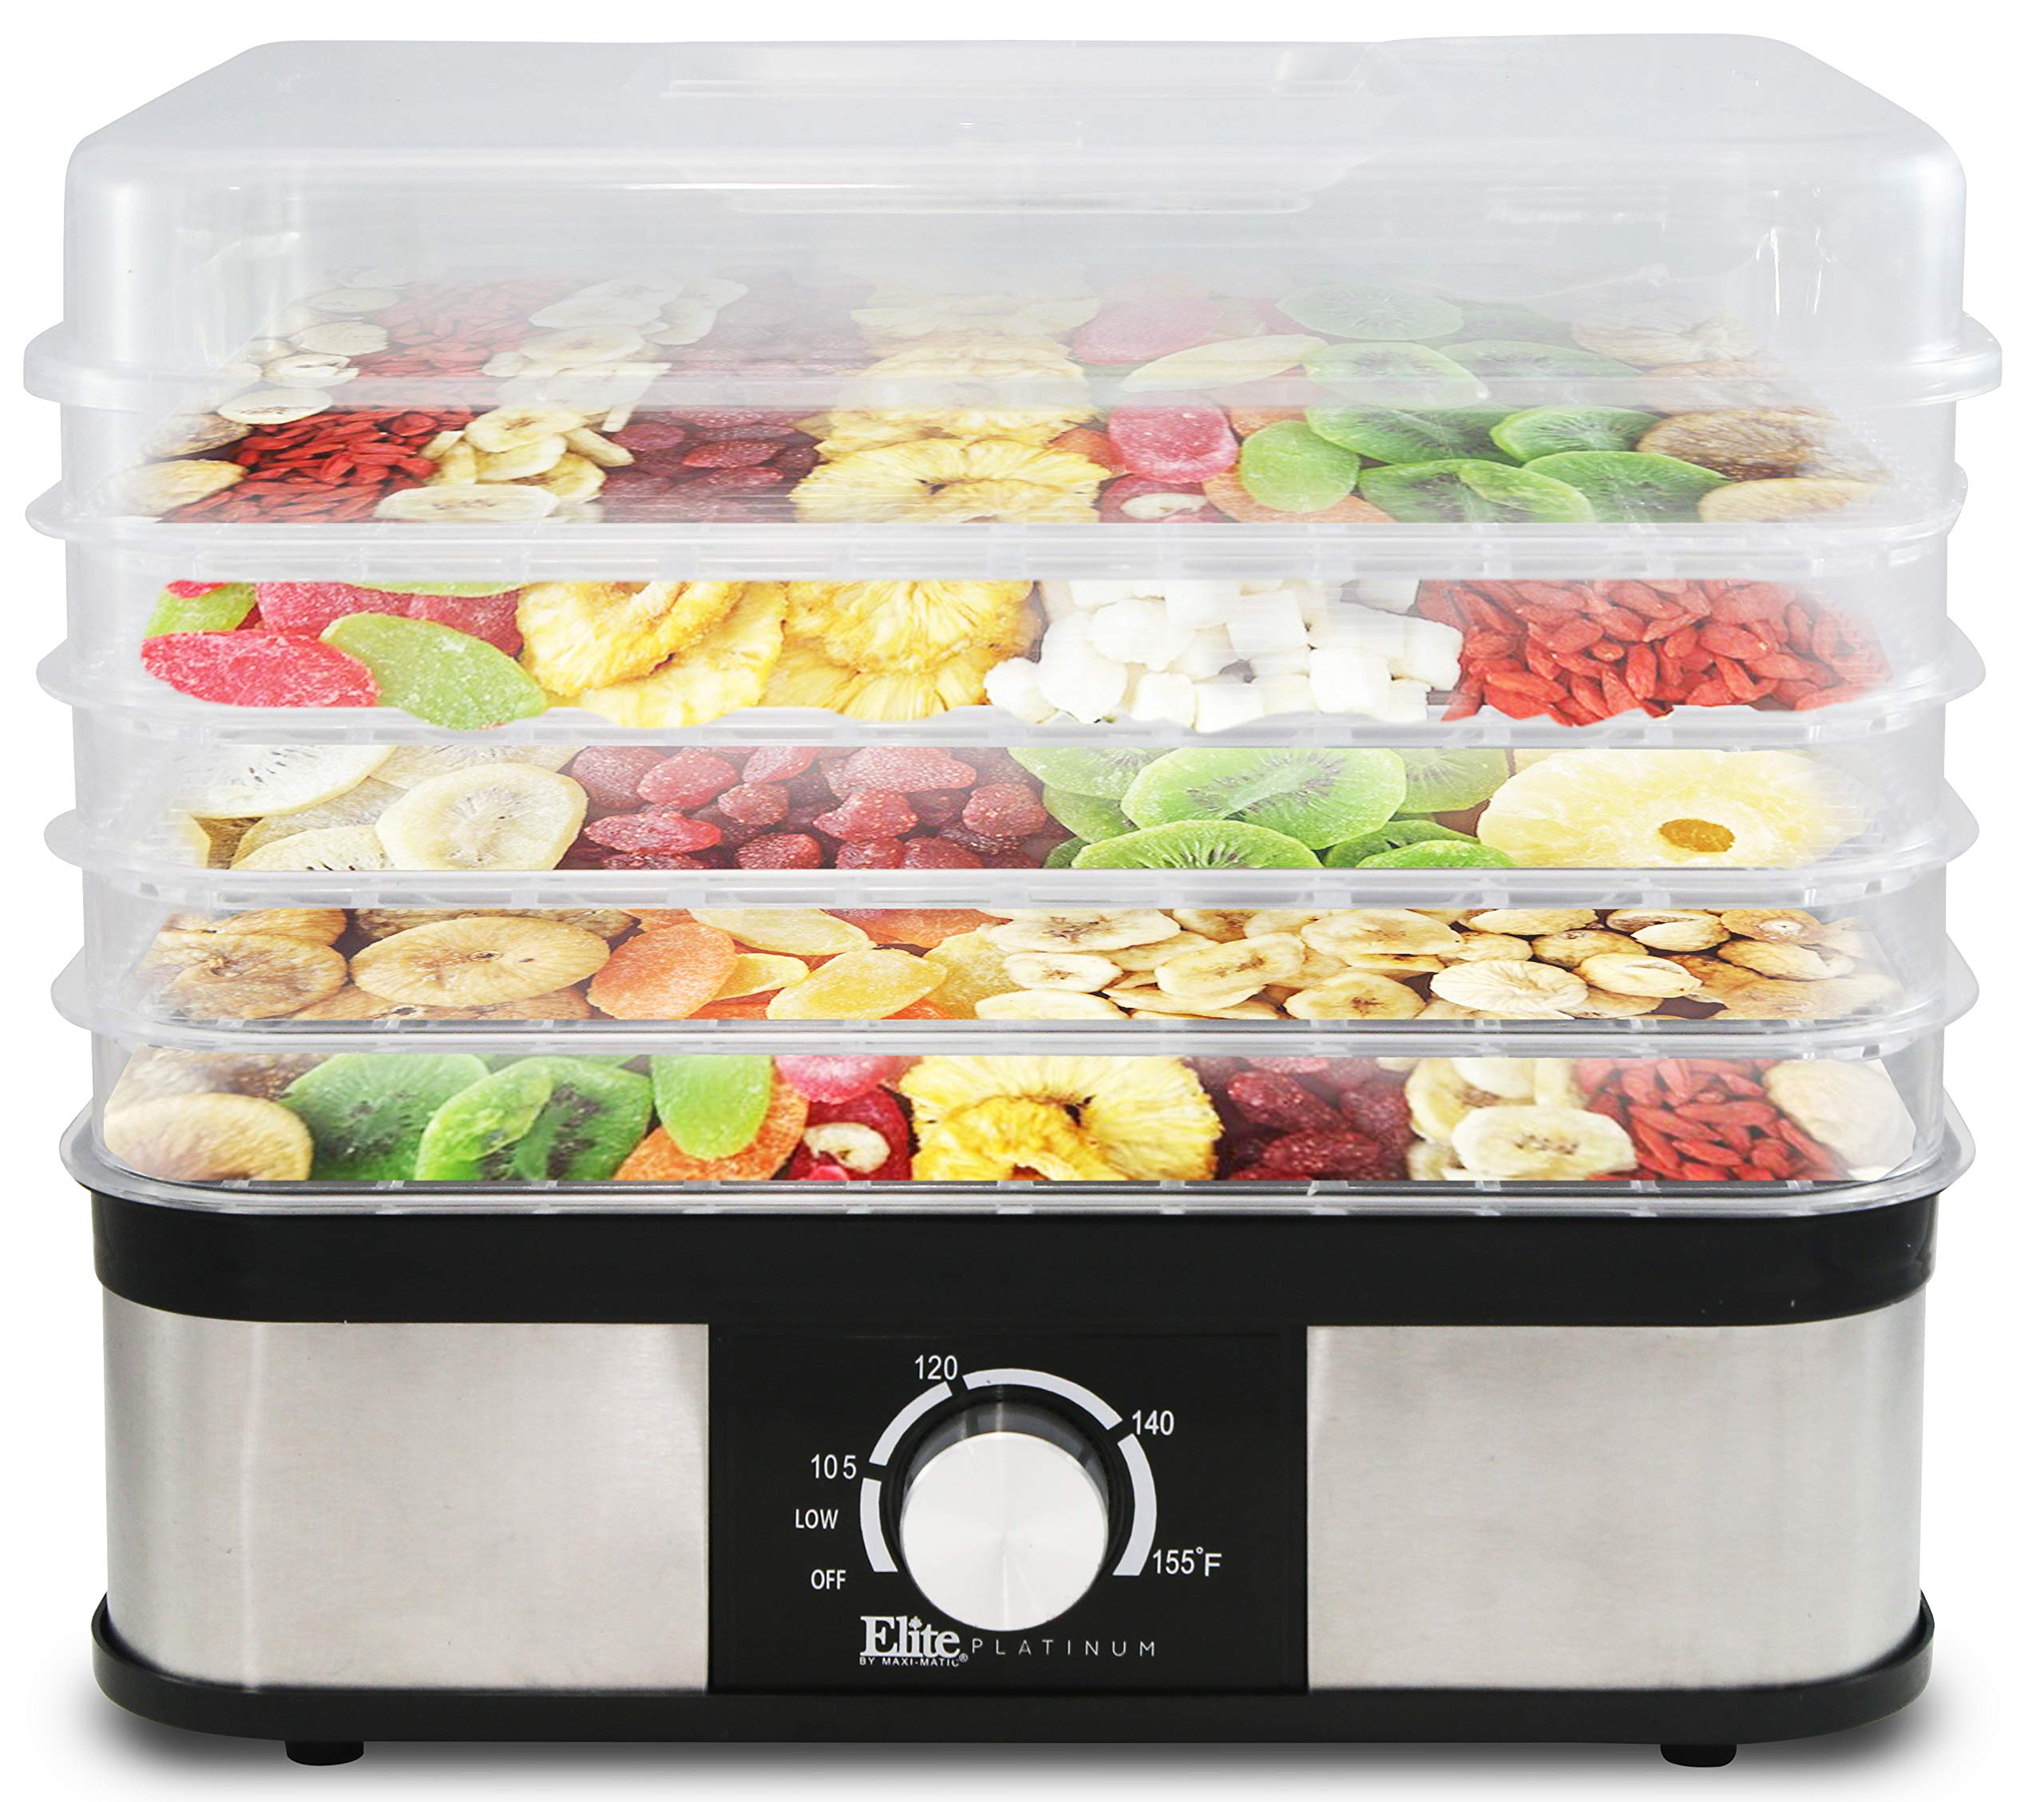 Elite Platinum EFD-1159 Multi-Tier Electric Snack Maker Food Dehydrator Food Preserver Machine by Maxi-Matic